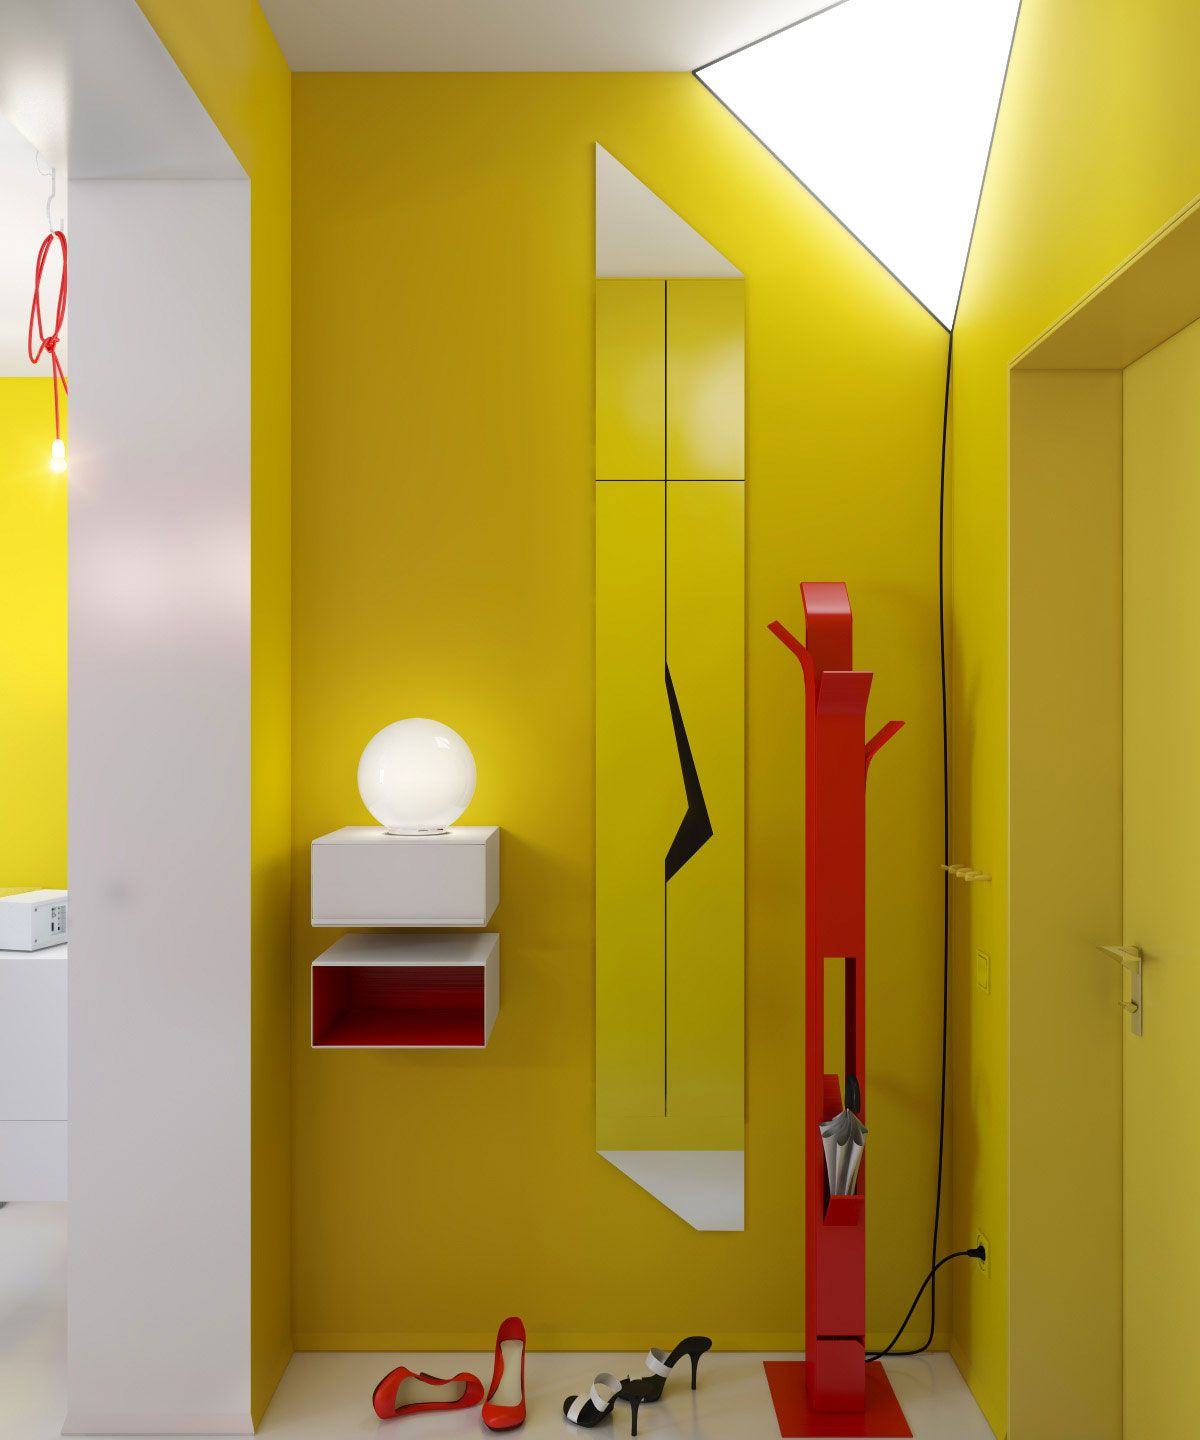 Hallway-and-Entryway-with-Yellow-Wall-Paint-Color-and-Red-Coat ...